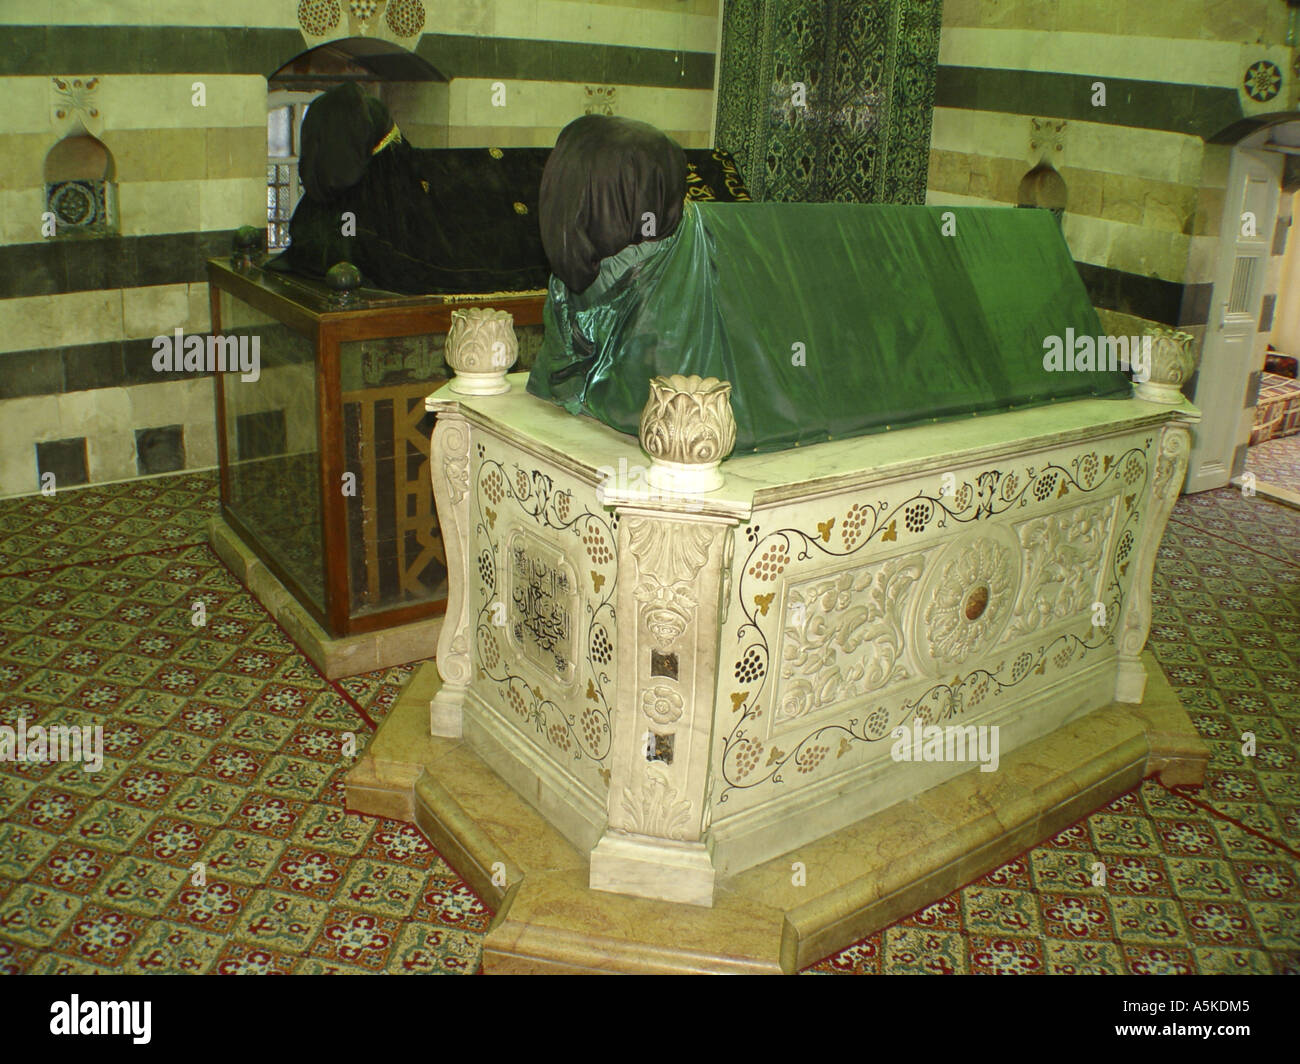 Shrine of saladin - Stock Image